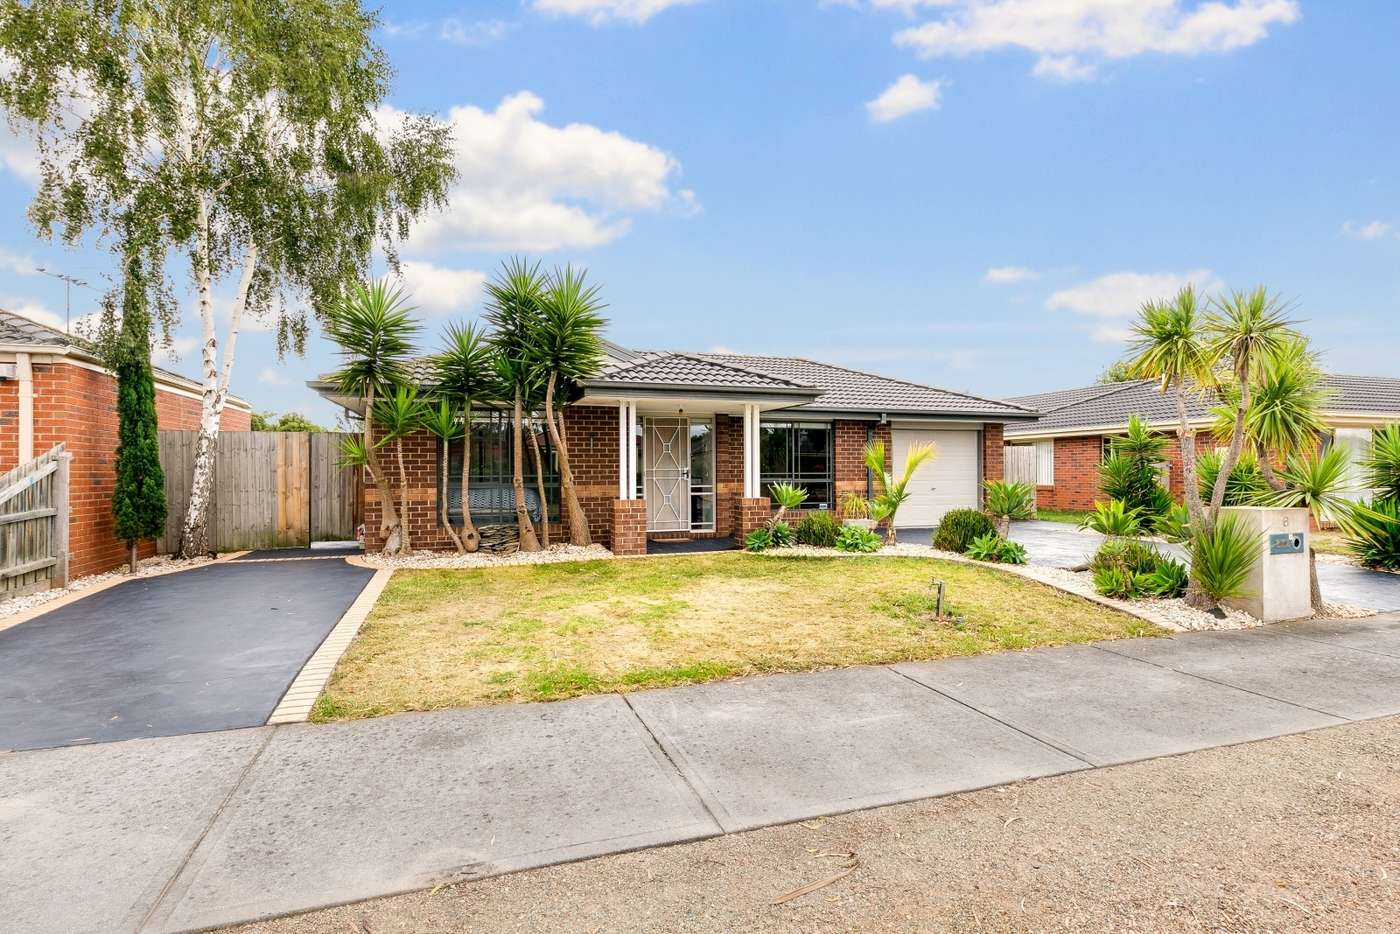 Main view of Homely house listing, 6 Kingfisher Court, Hastings VIC 3915